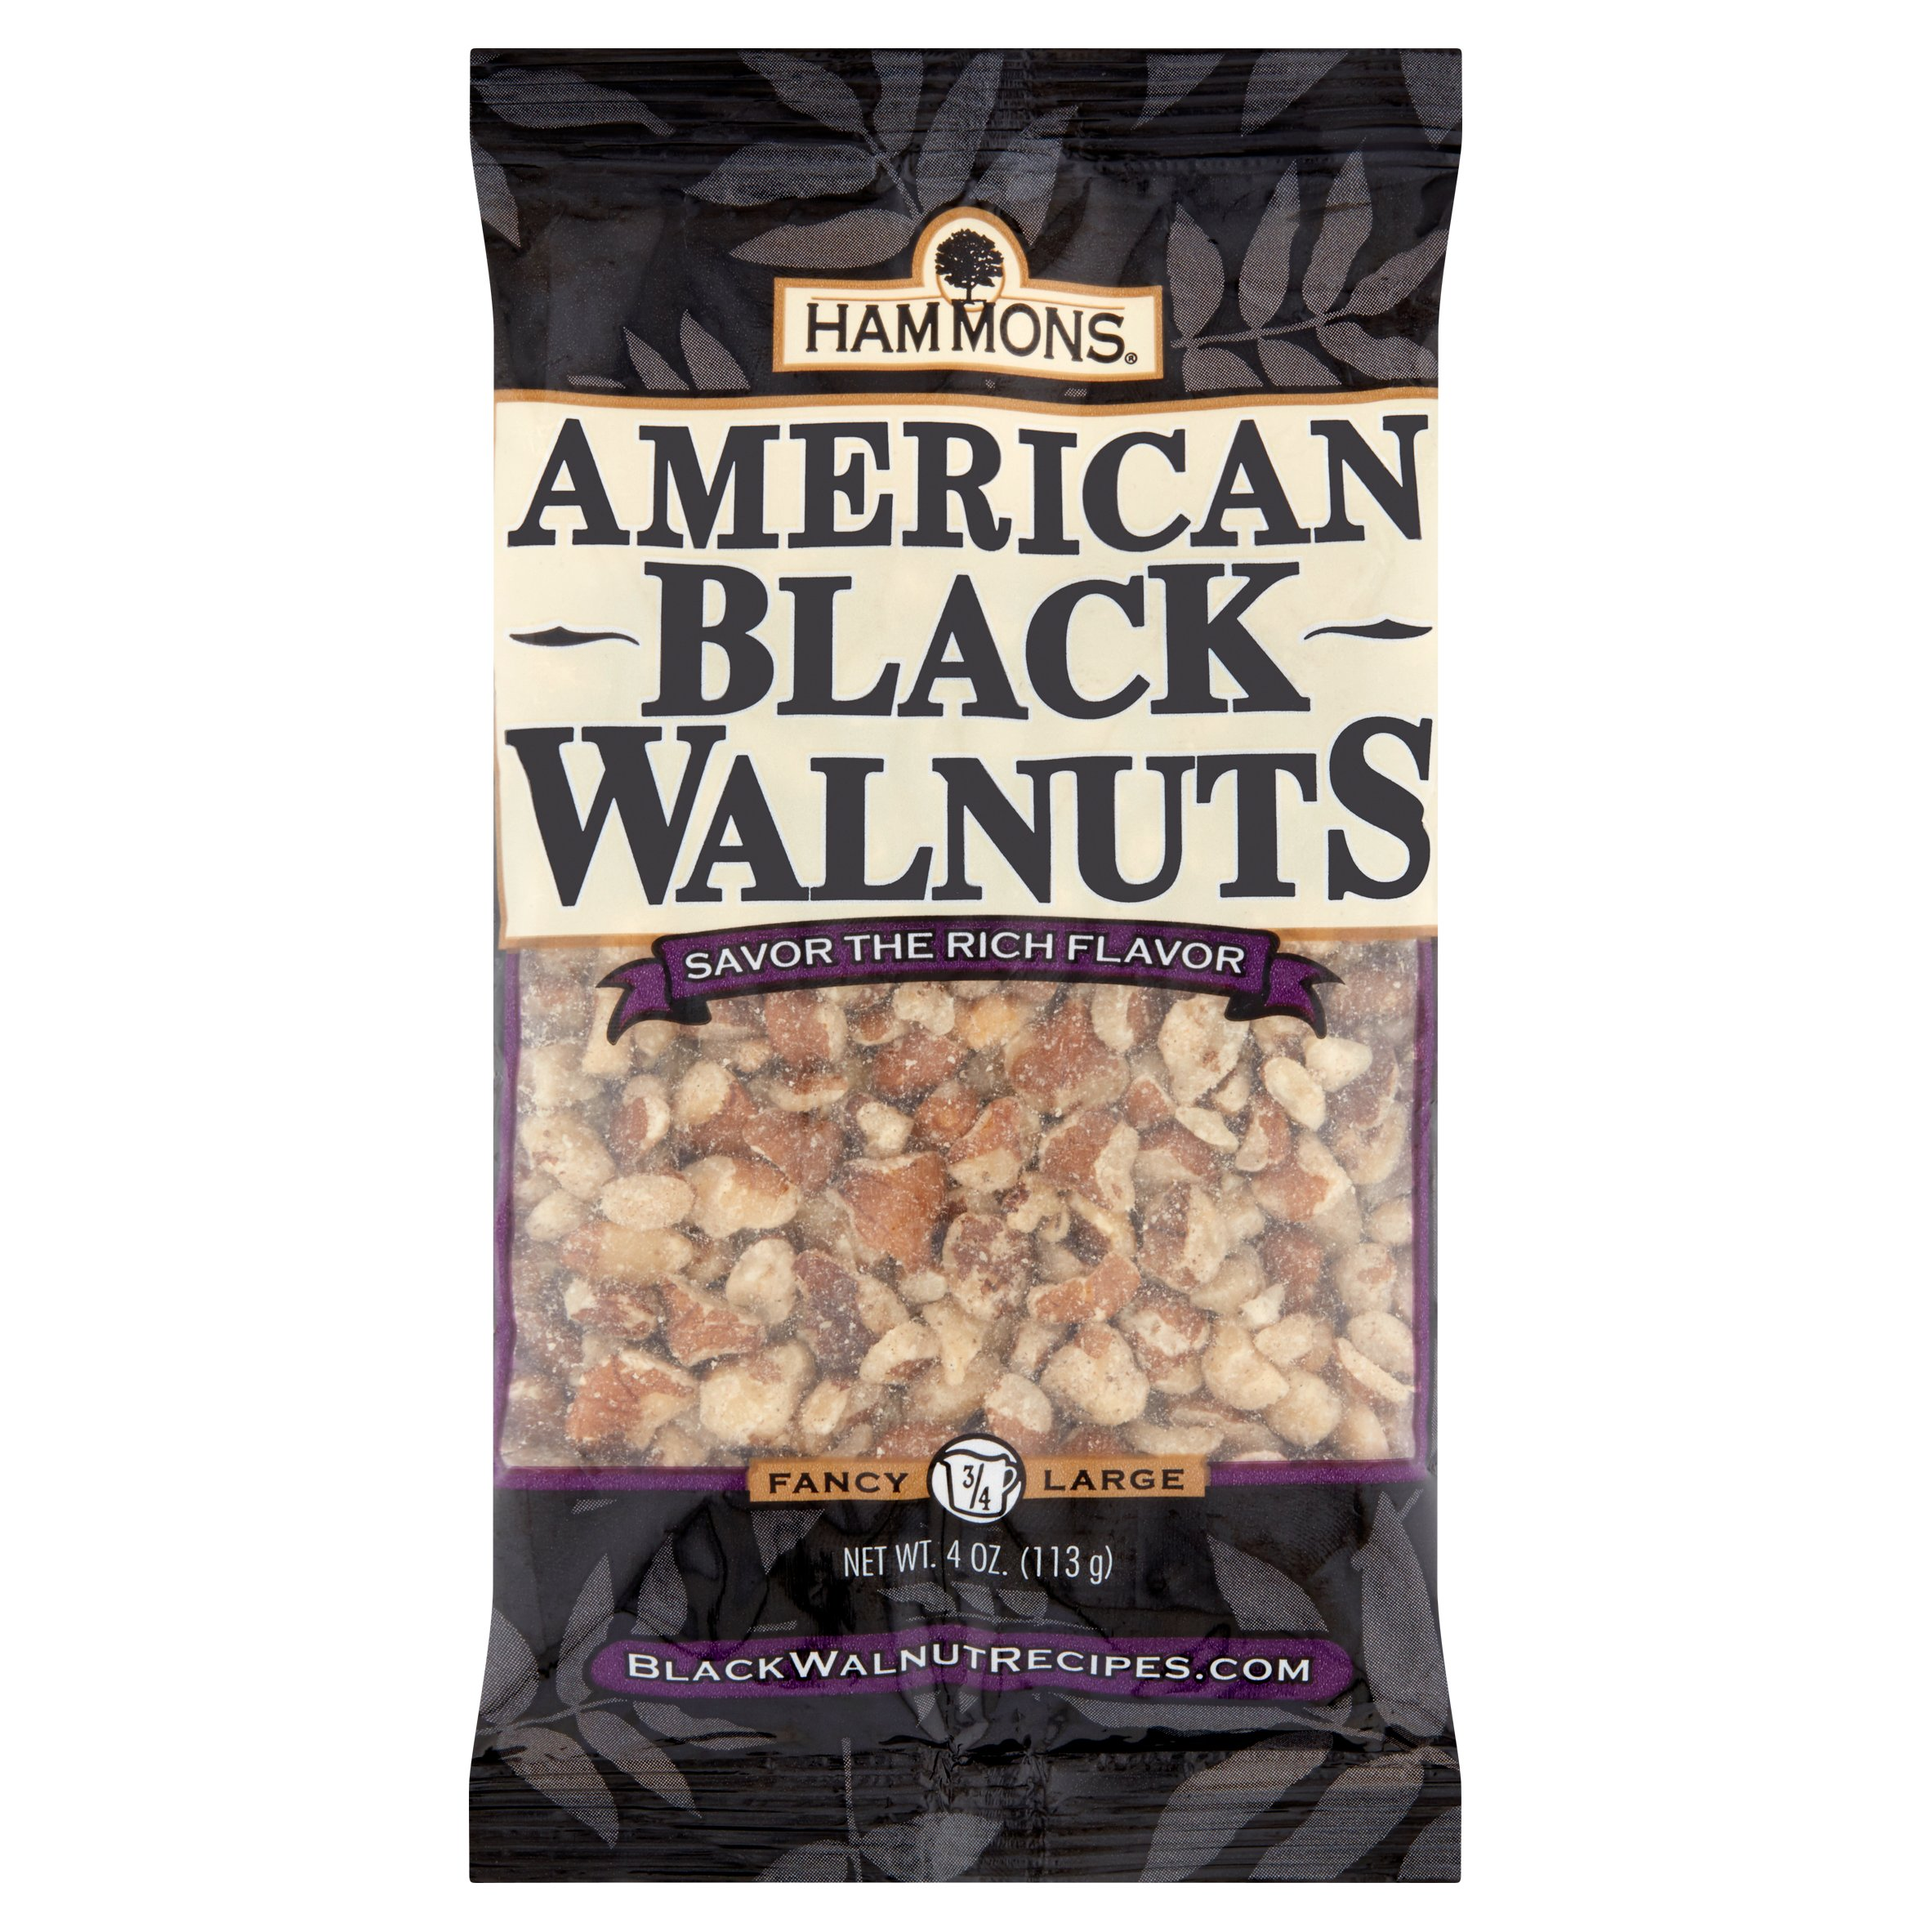 Hammons American Black Walnuts, 4 oz